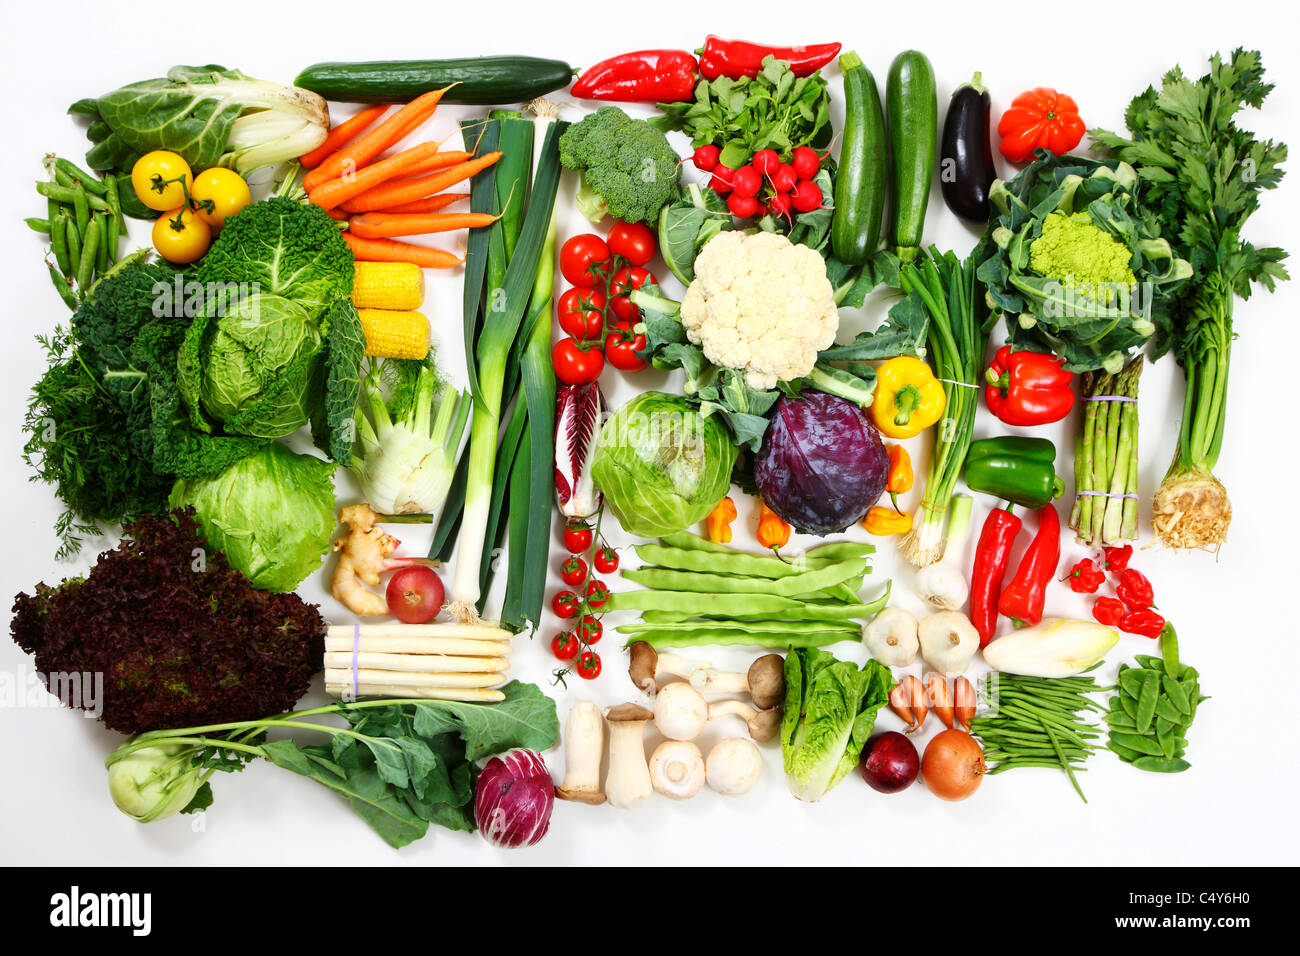 Many different vegetables and salad. Fresh market greens. Stock Photo